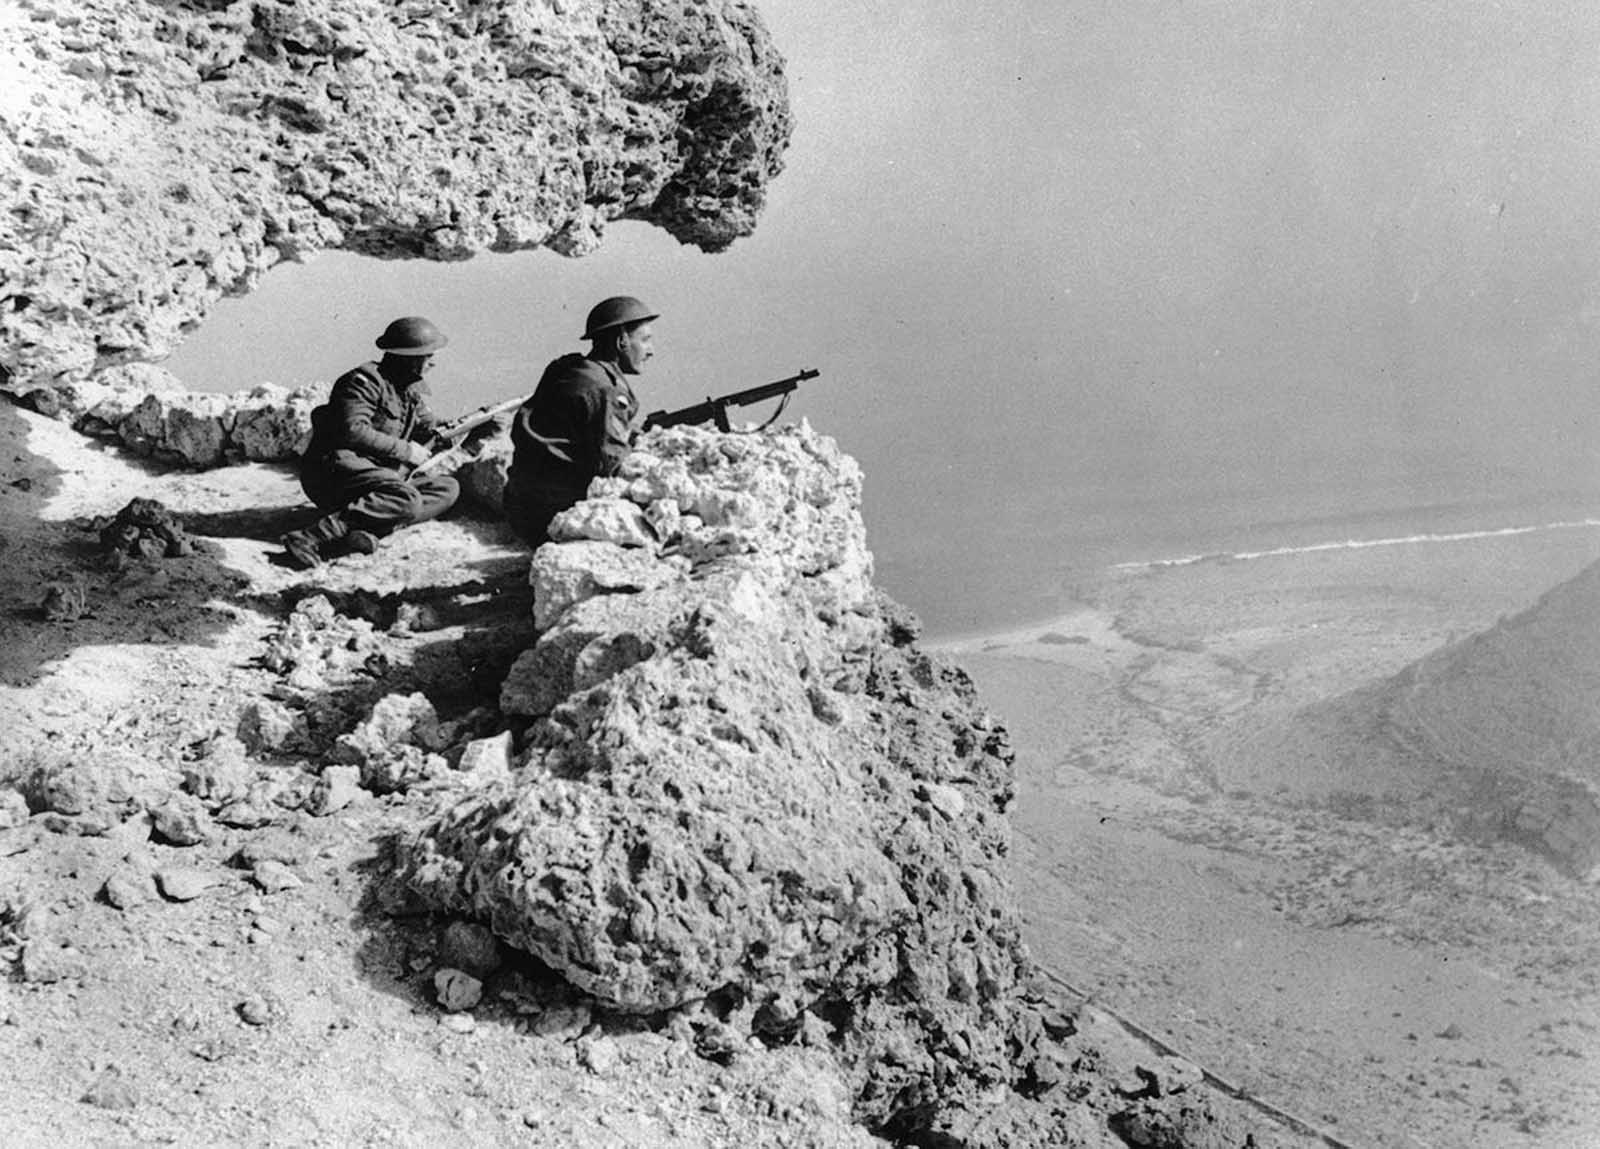 A British patrol is on the lookout for enemy movements over a valley in the Western Desert, on the Egyptian side of the Egypt-Libya border, in February of 1942.